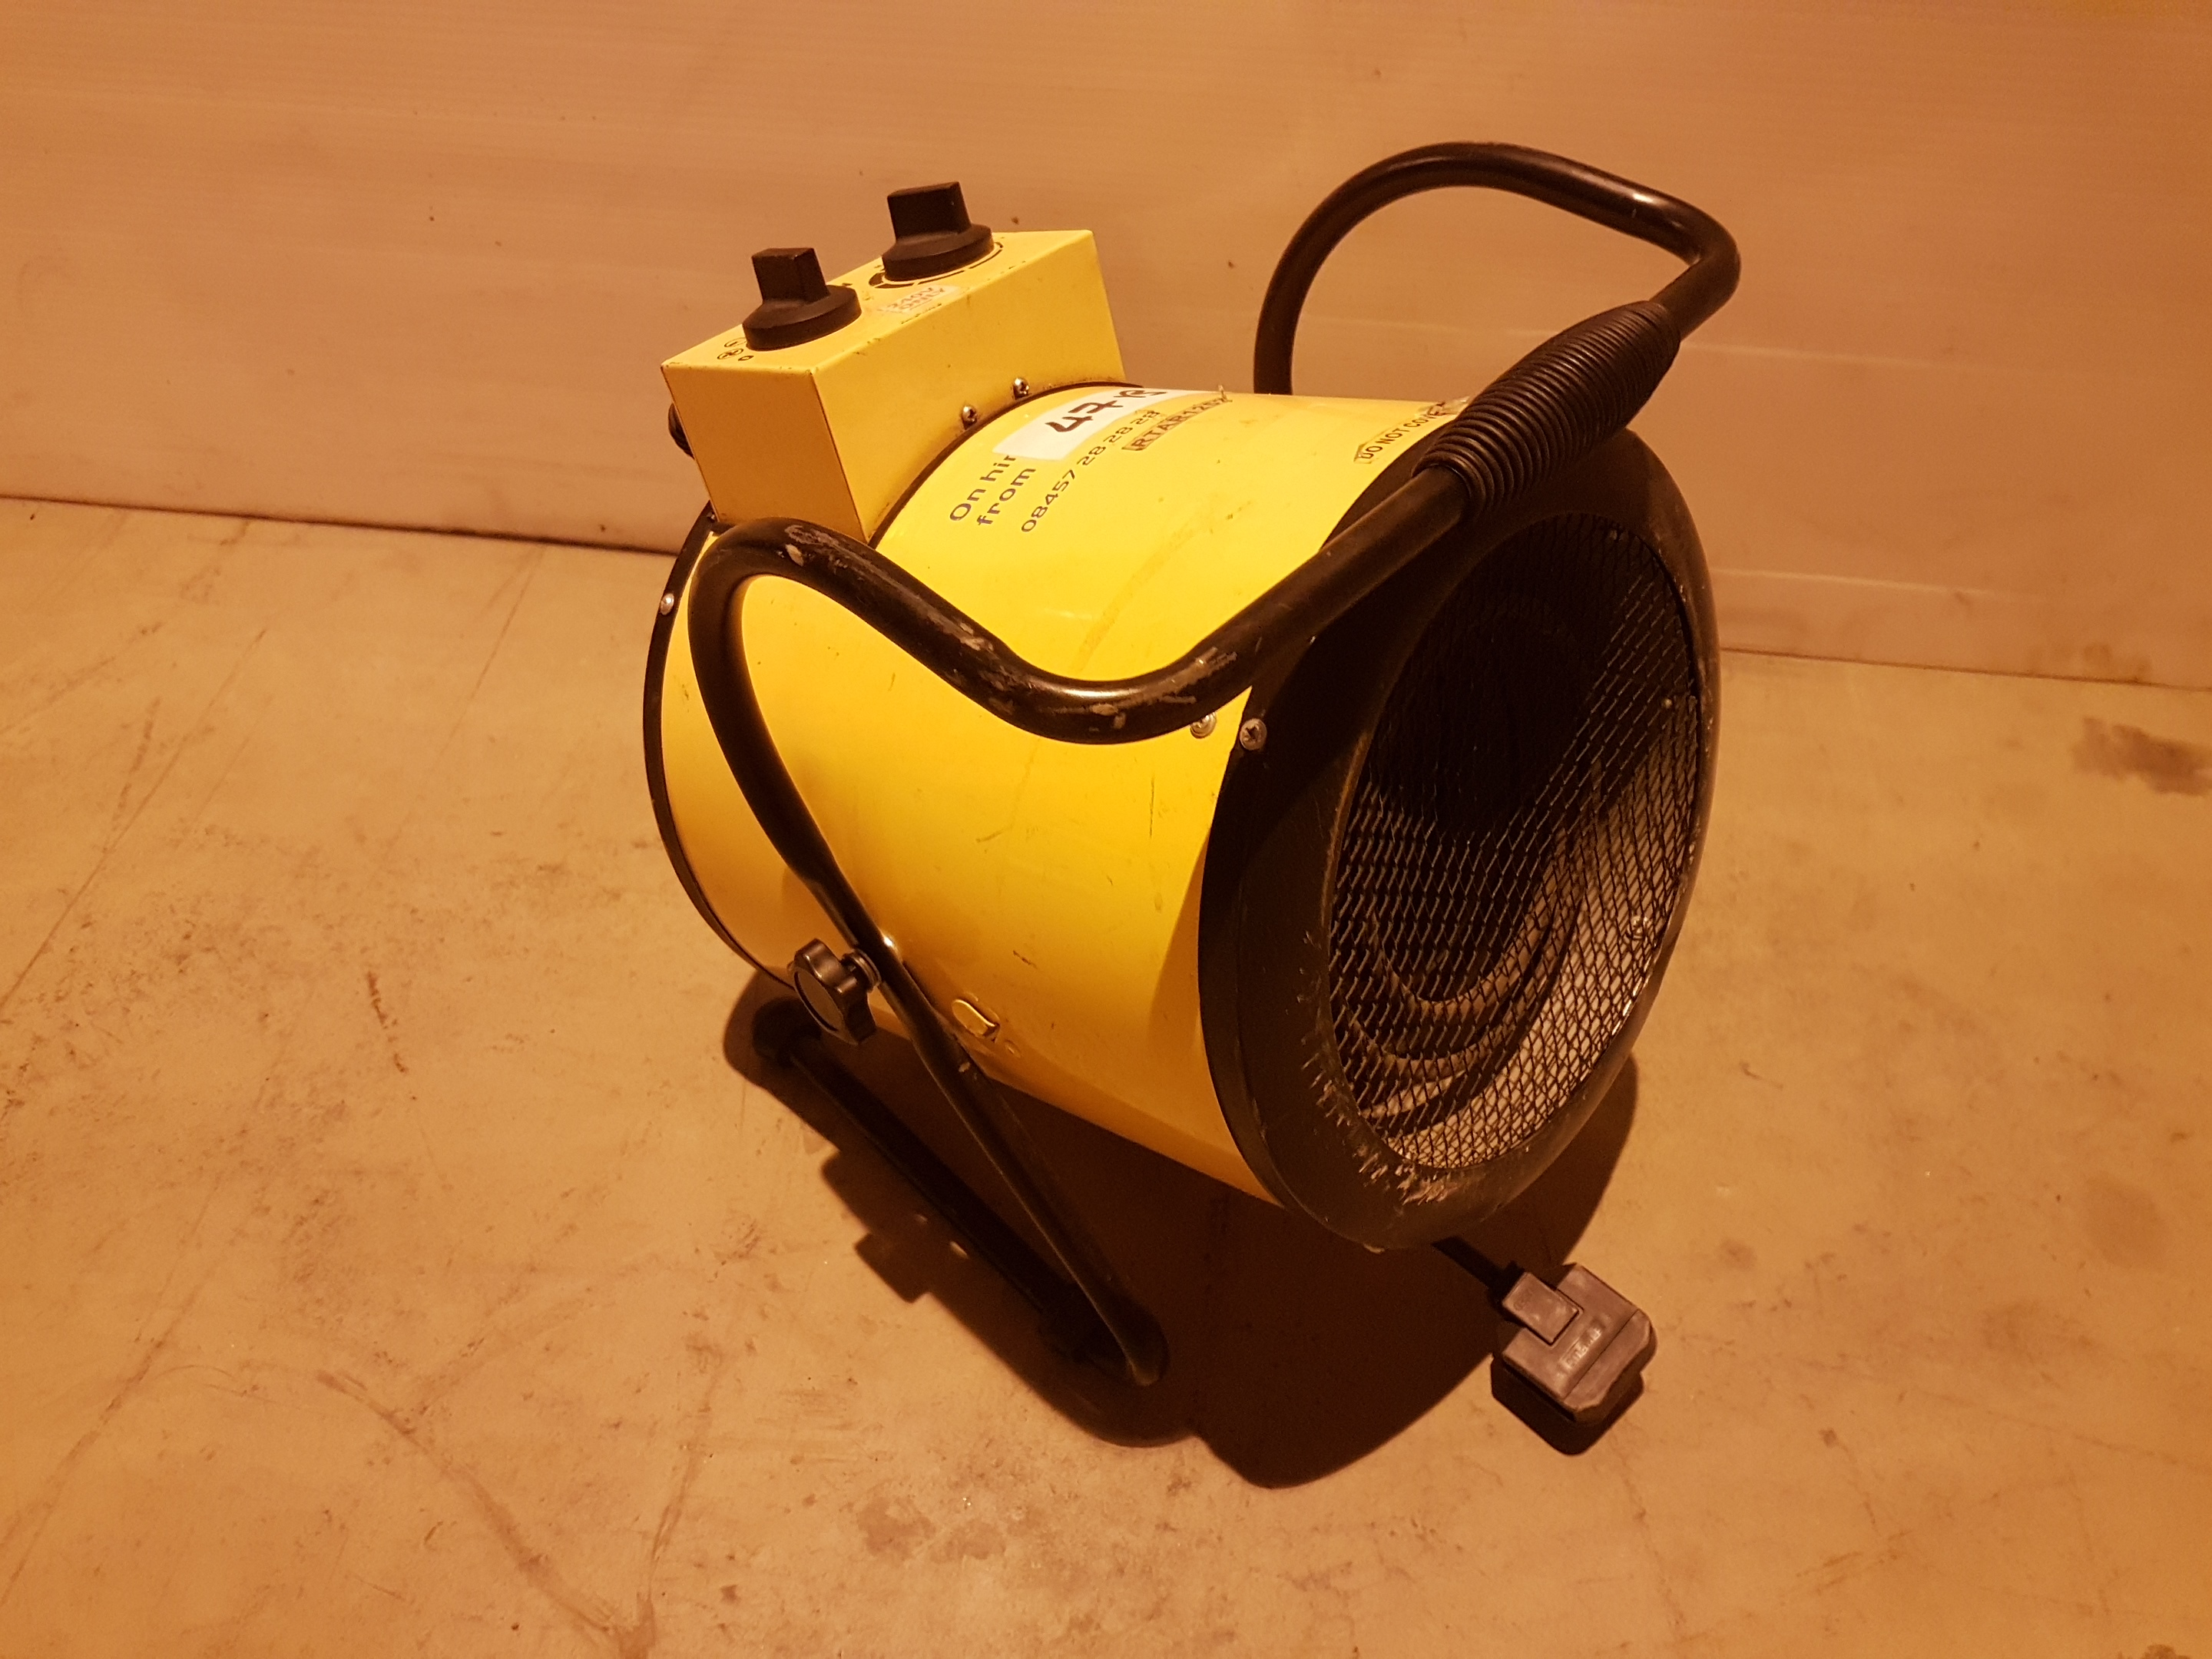 Lot 47 - 240v Retail Heater rtar1252, working